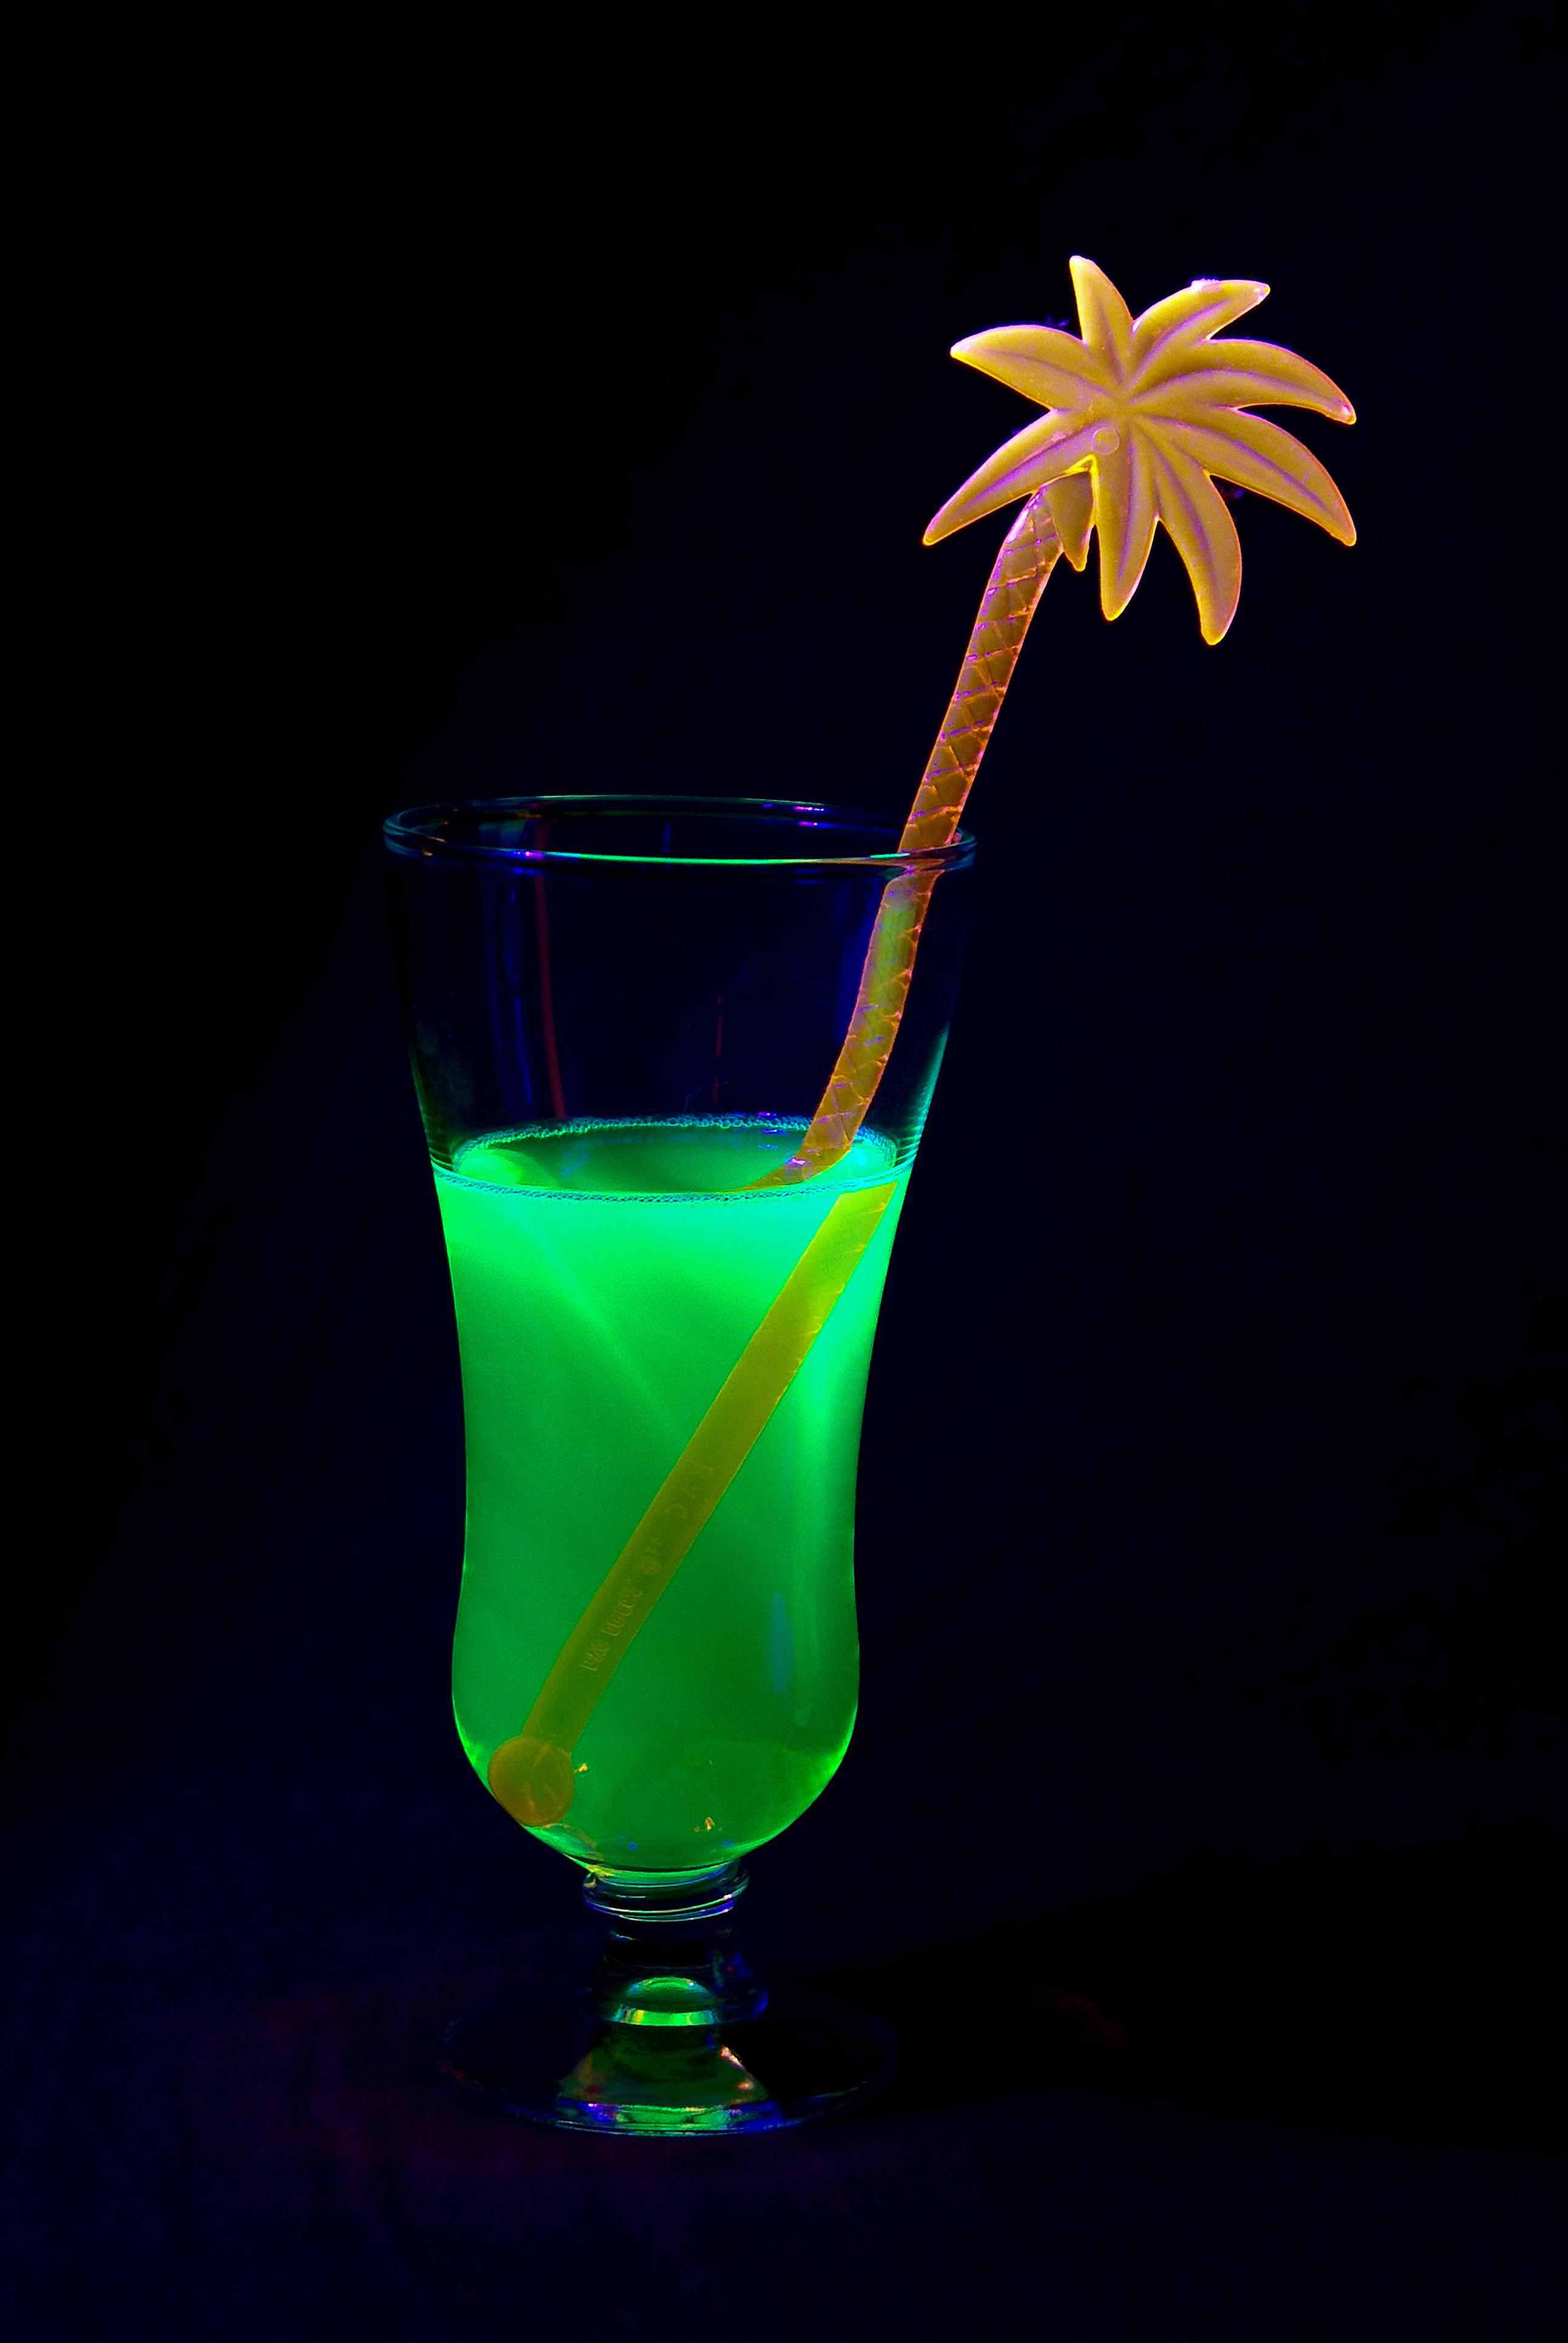 Very few liquids you can safely drink glow in the dark, but some do glow under black light.